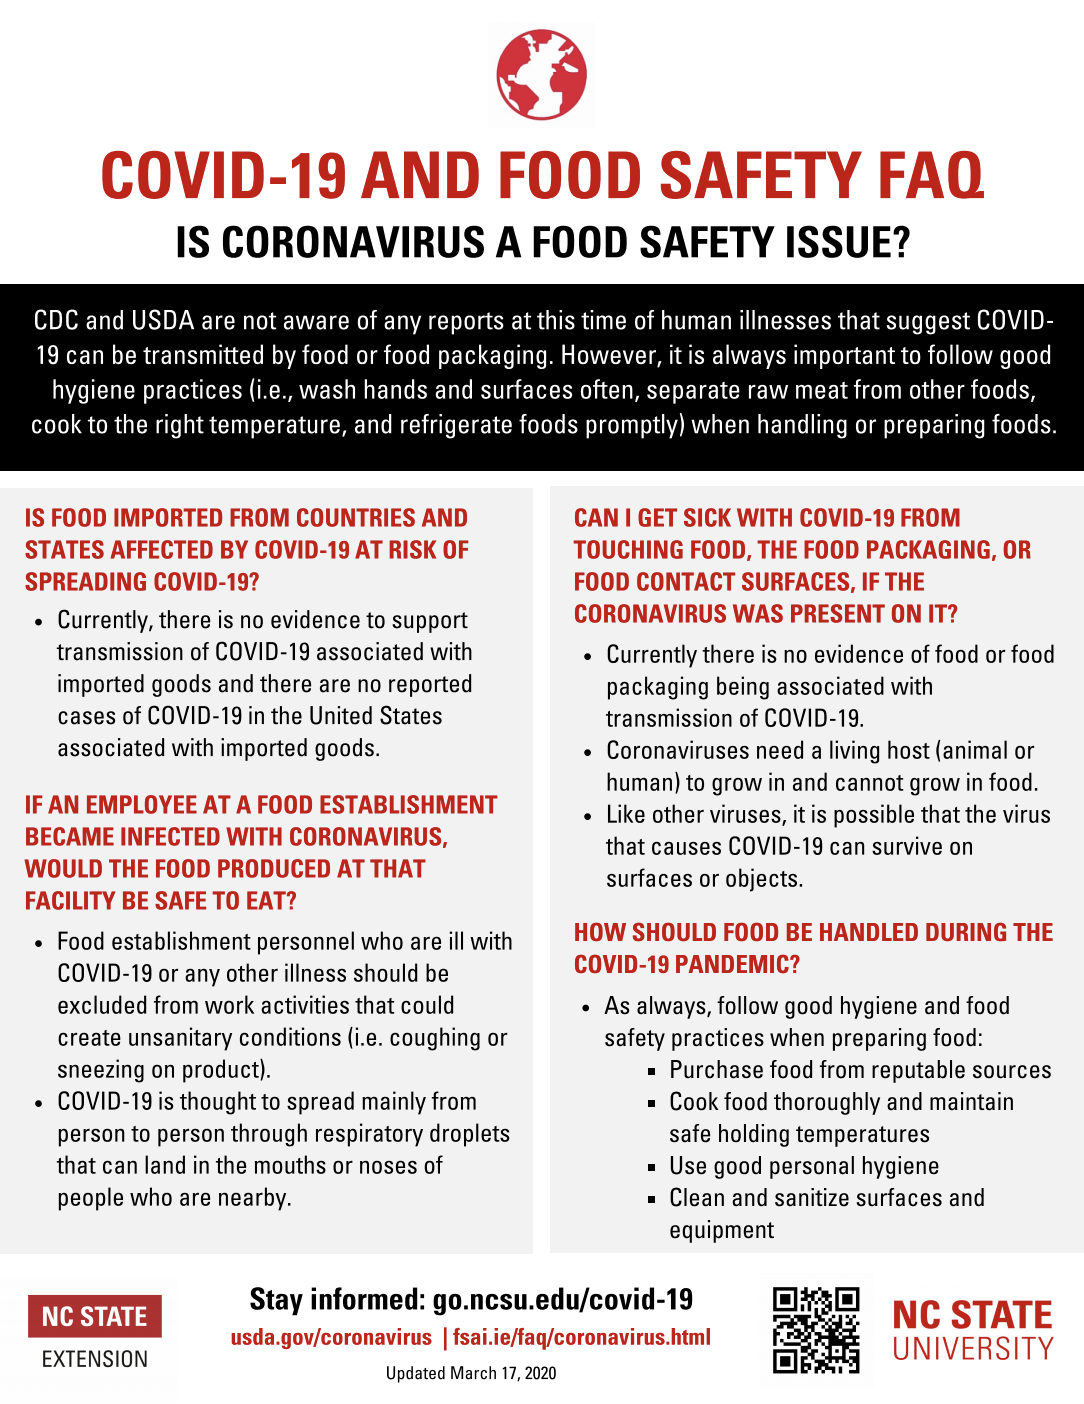 Food Safety flyer image